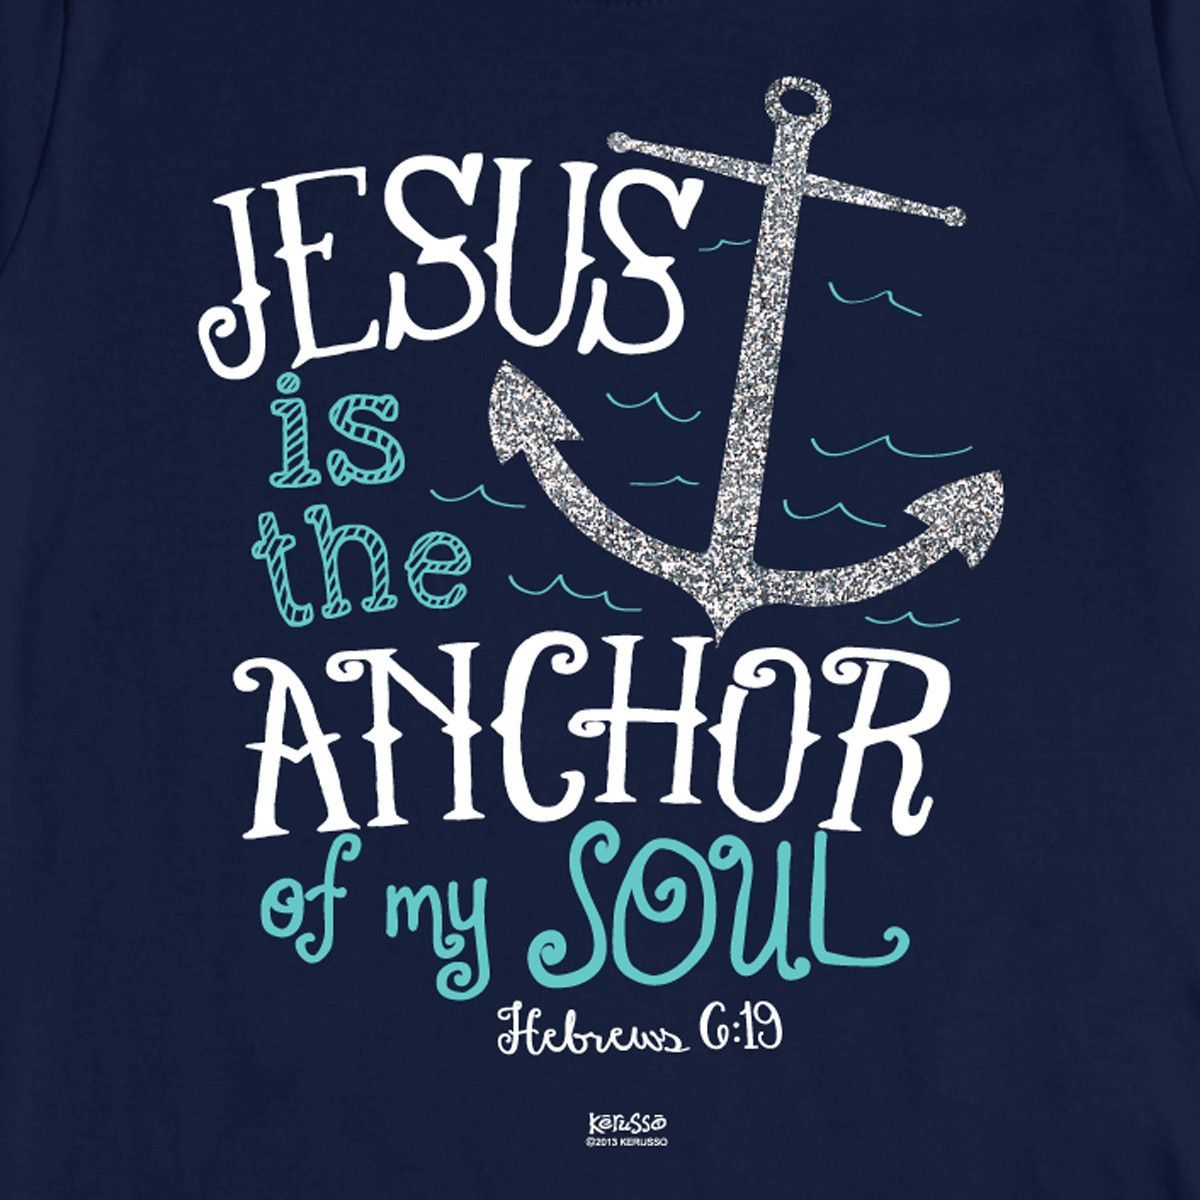 Jesus Is Lord Quotes And Images: This Kerusso Christian T-shirt Features A Glittering